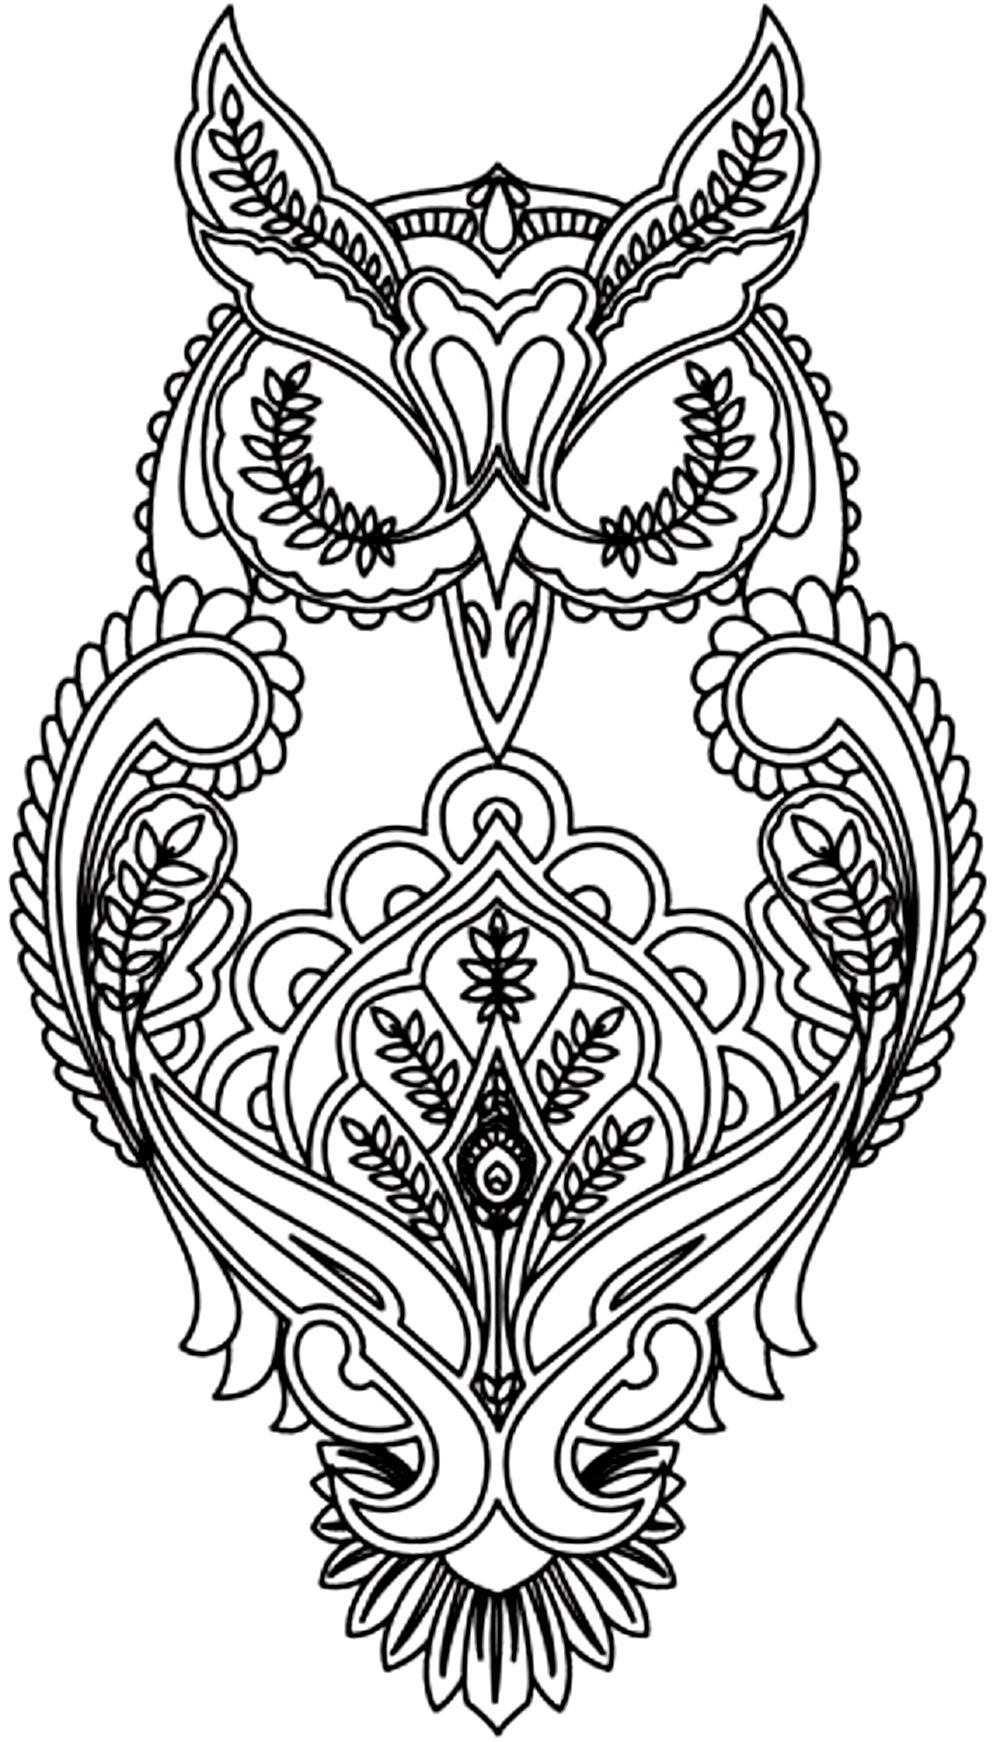 100 Free Coloring Pages For Adults And Children Owl Coloring